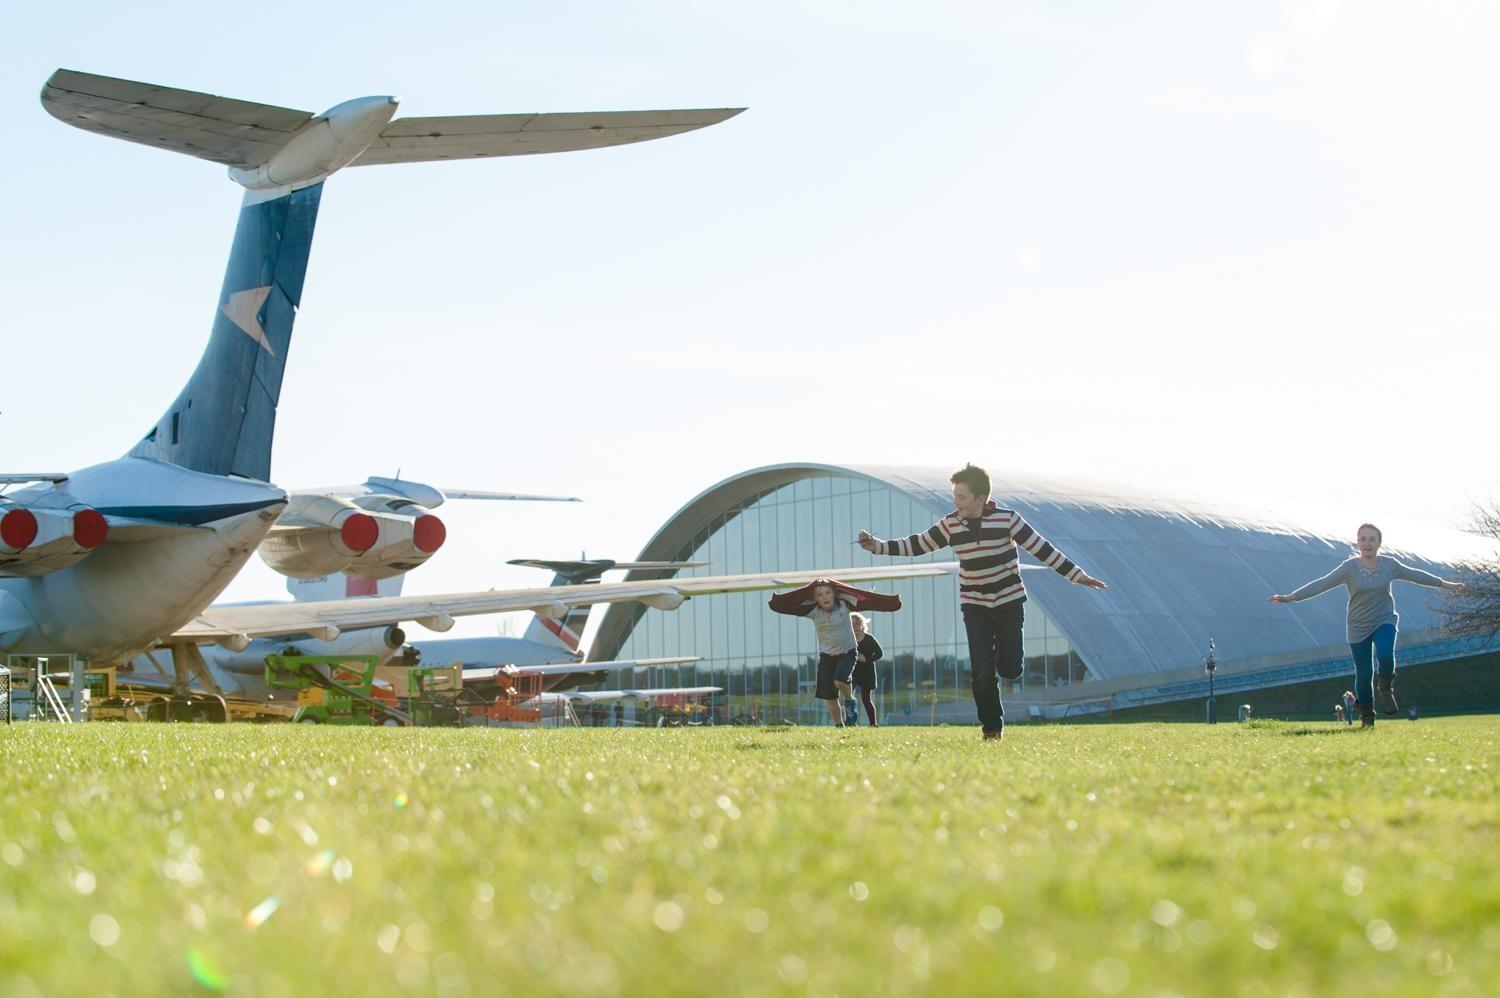 IWM Duxford, Children running between planes